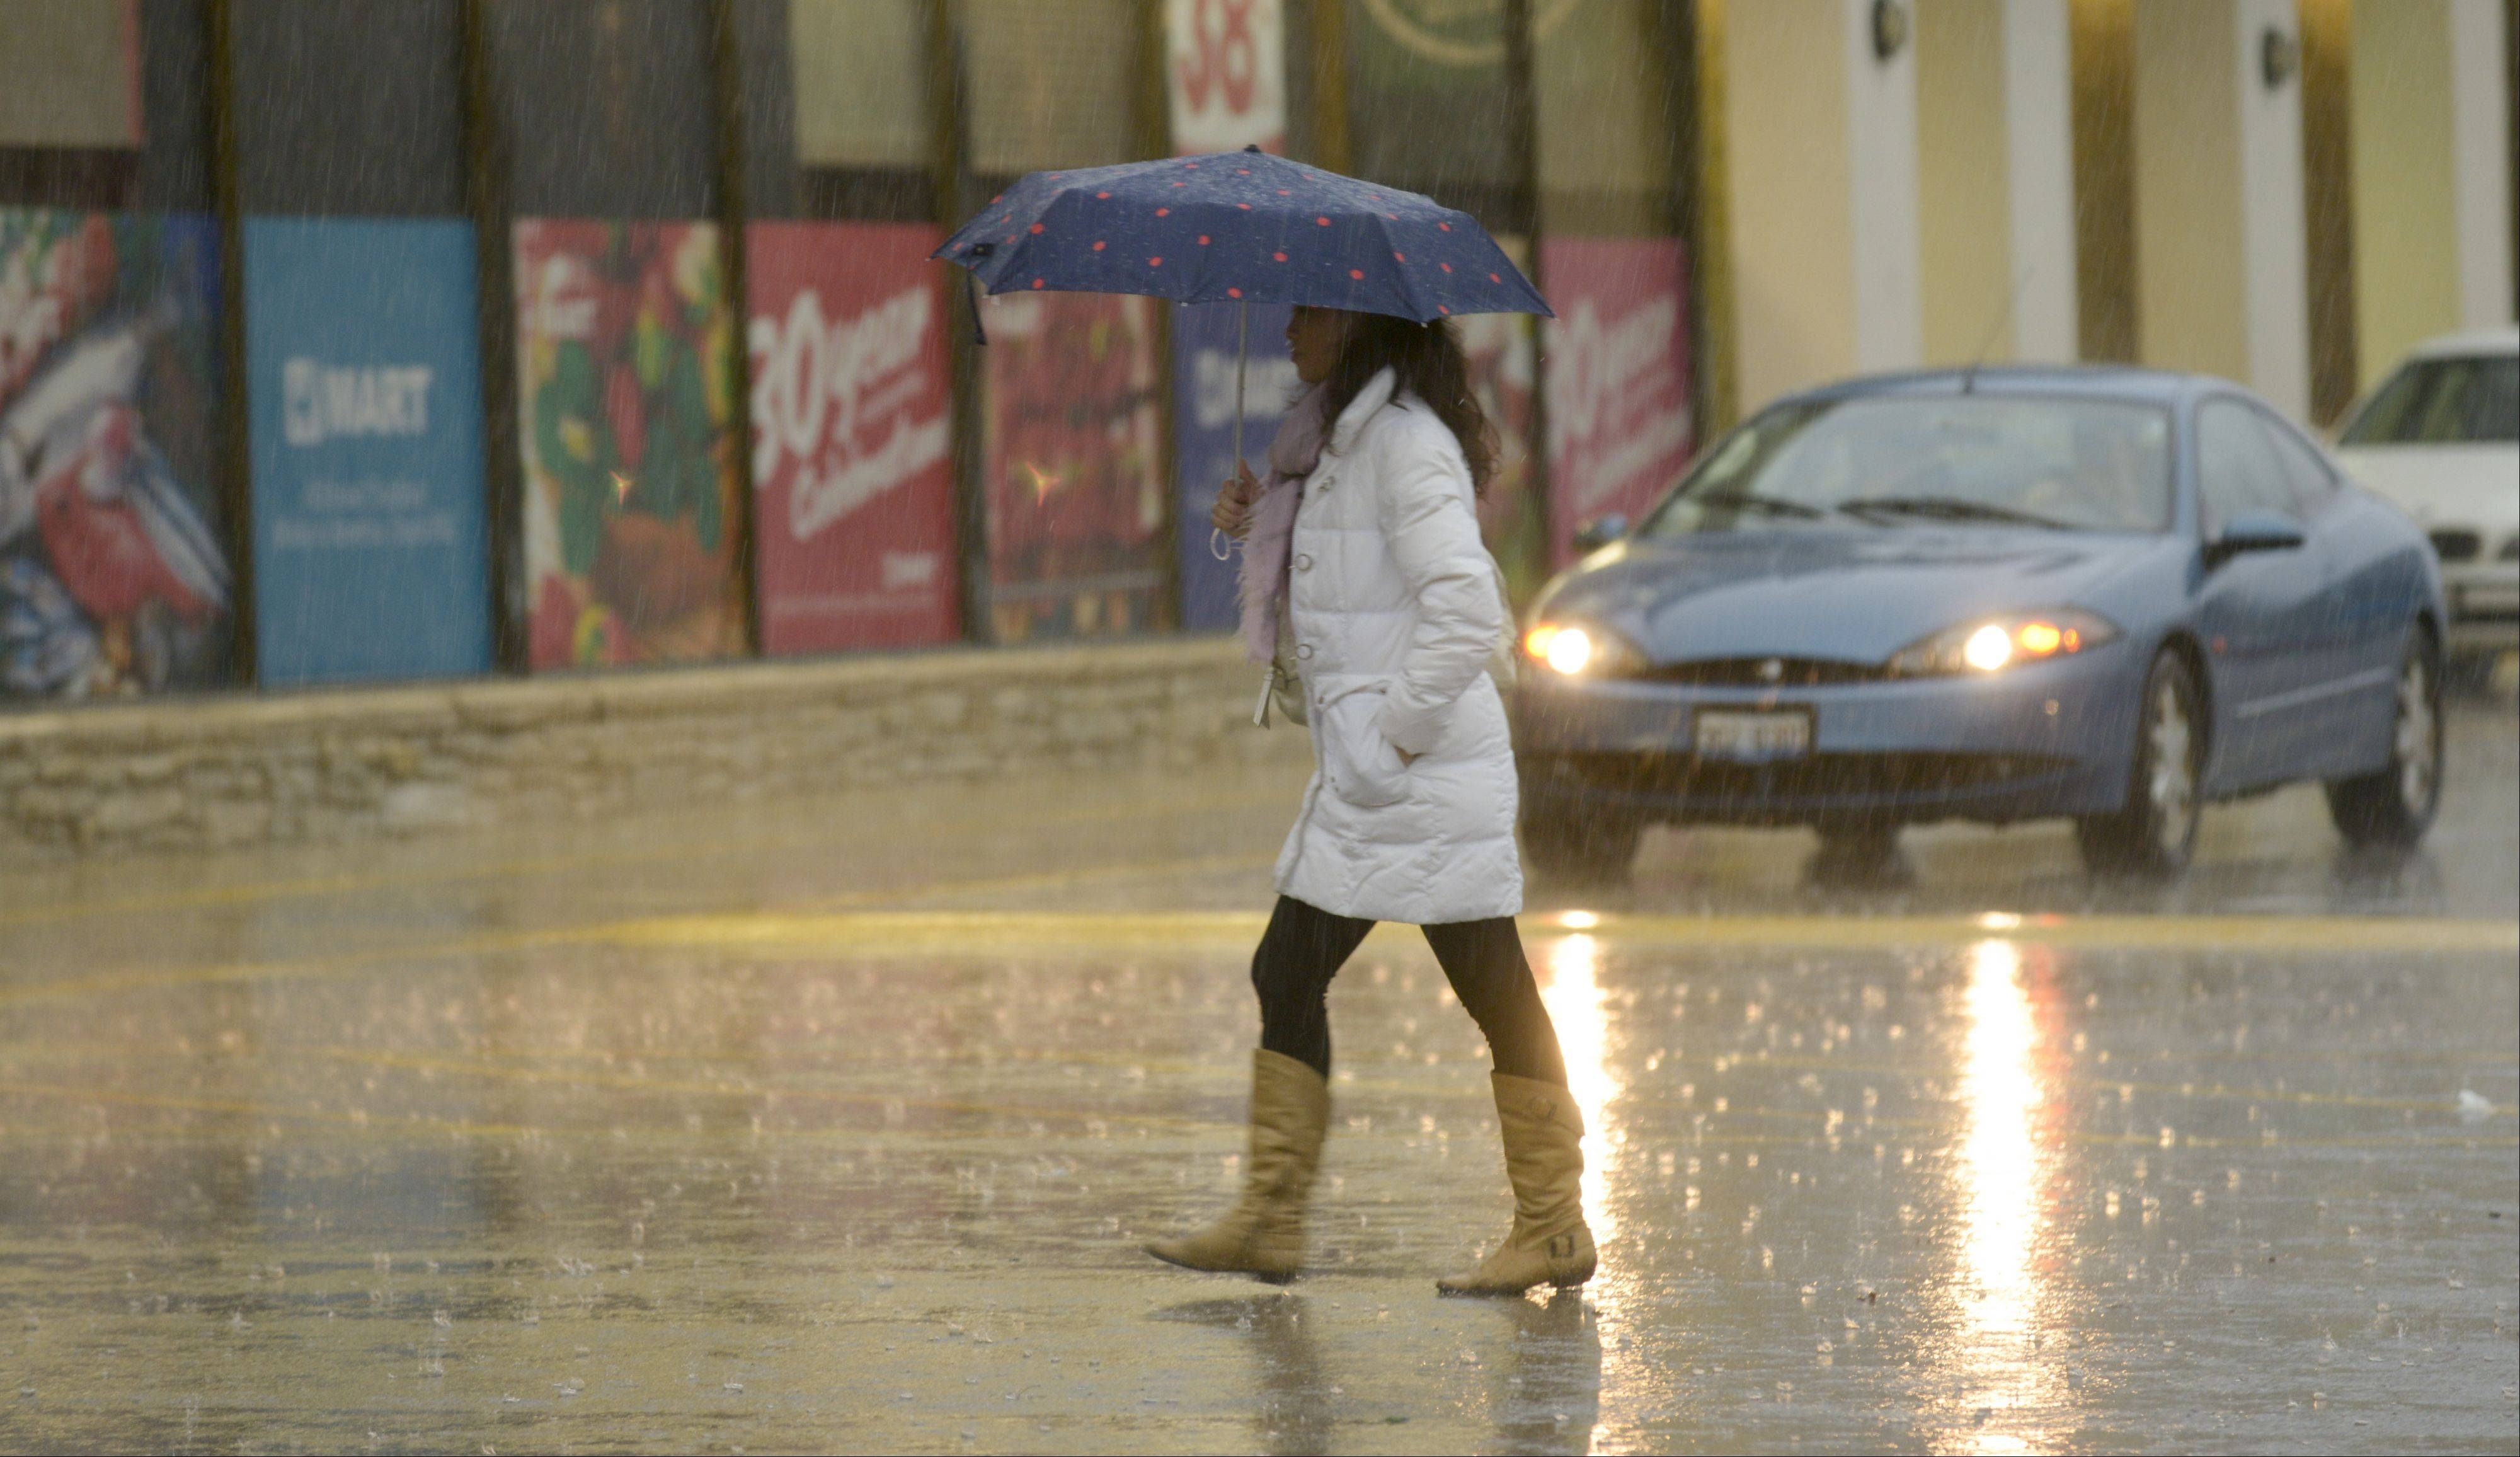 A shopper in Naperville uses an umbrella to keep from the heavy rains. Despite the downpour and high winds, the Chicago area was spared the worst of the storms that tore through the Midwest on Sunday.